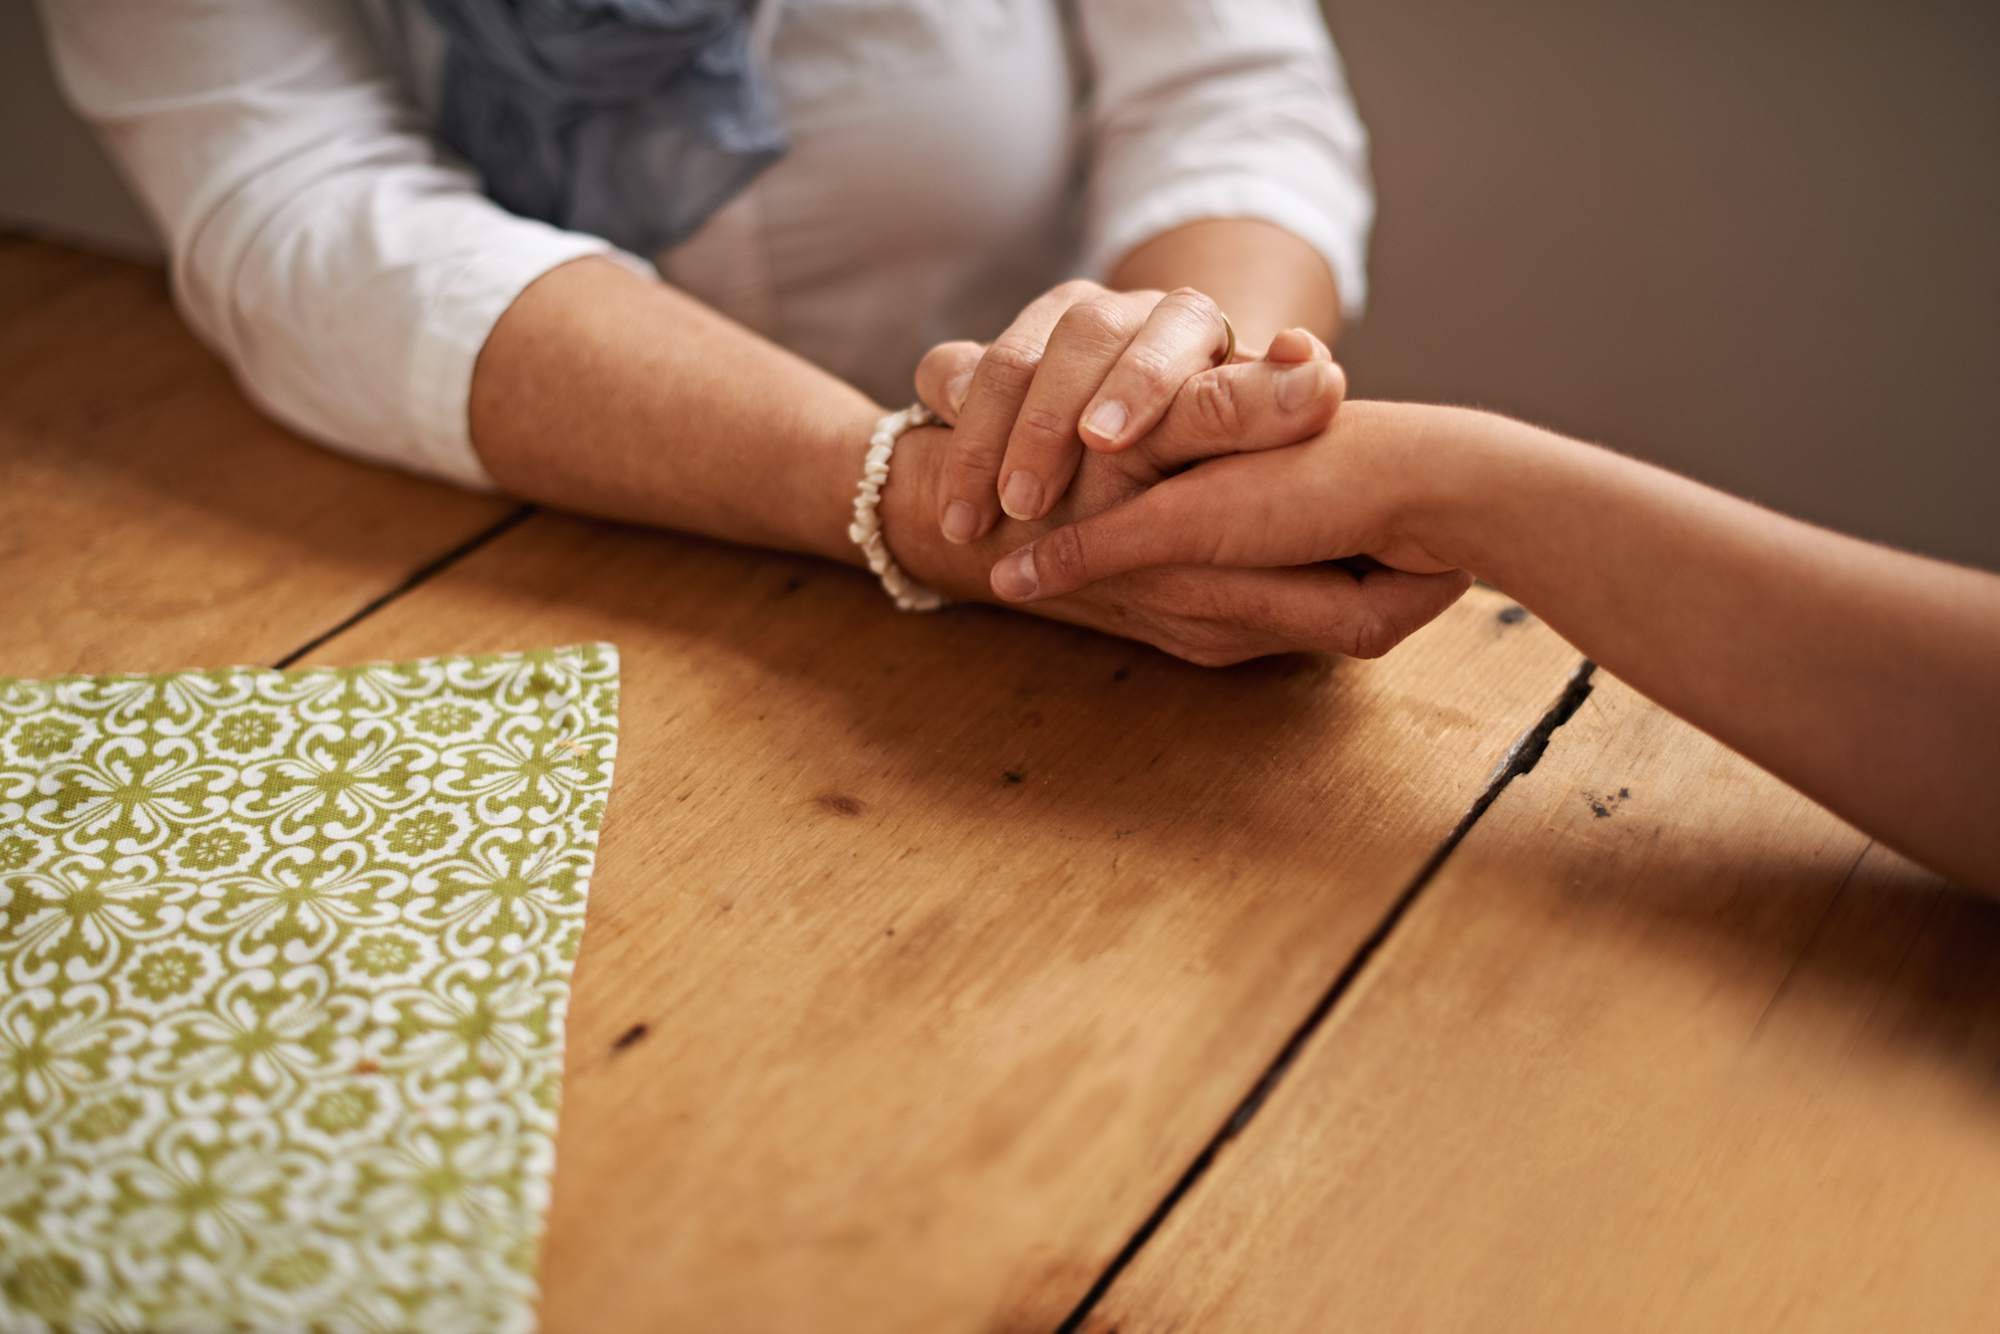 women holding hands on table